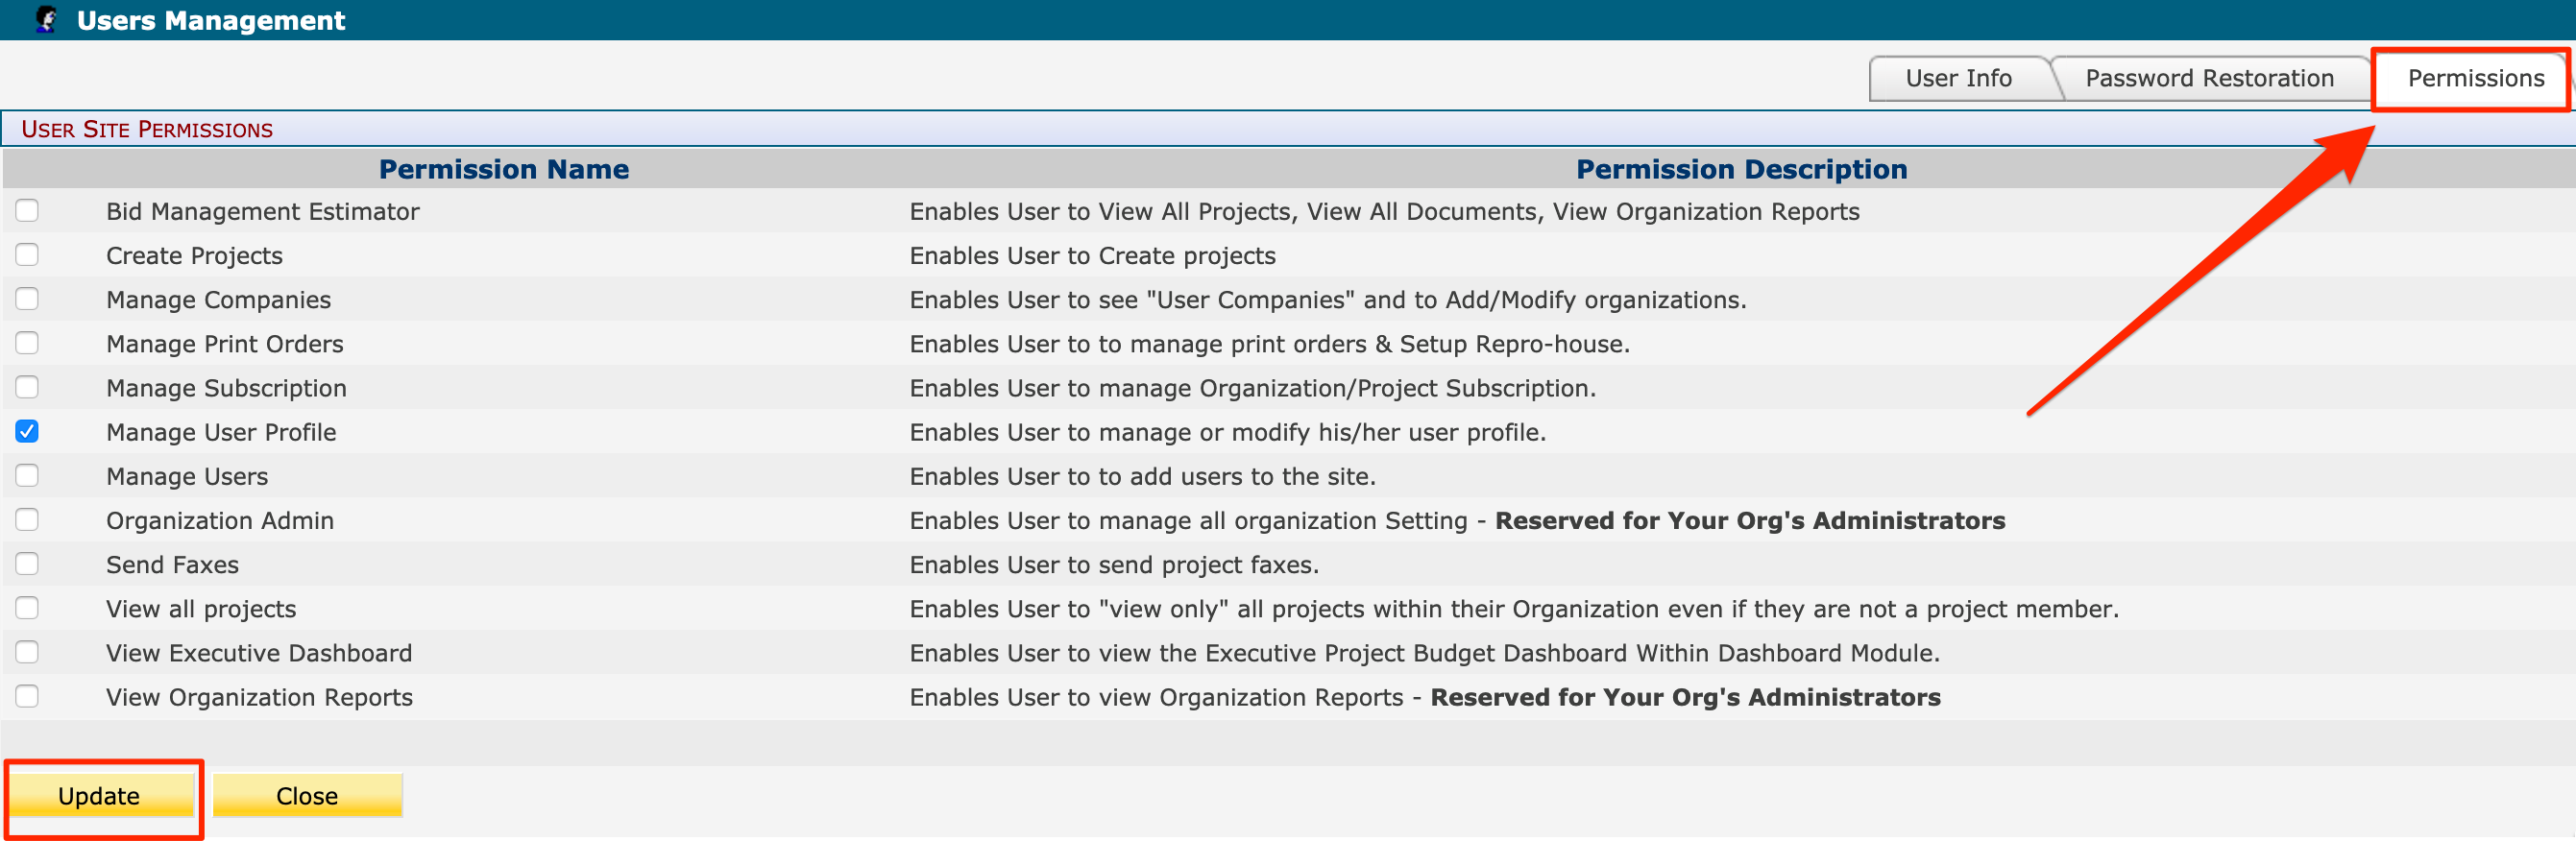 """Users Management  USER SITE PERMISSIONS  User Info  Permission Description  Enables User to View All Projects, View All Documents, View Organization Reports  Enables User to Create projects  Enables User to see """"User Companies"""" and to Add/Modify organizations.  Enables User to to manage print orders & Setup Repro-house.  Enables User to manage Organization/Project Subscription.  Enables User to manage or modify his/her user profile.  Enables User to to add users to the site.  Enables User to manage all organization Setting - Reserved for Your Org's Administrators  Enables User to send project faxes.  Password Restoration  Permissions  n  a  a  n  O  a  n  a  a  Permission Name  Bid Management Estimator  Create Projects  Manage Companies  Manage Print Orders  Manage Subscription  Manage User Profile  Manage Users  Organization Admin  Send Faxes  View all projects  View Executive Dashboard  View Organization Reports  Enables User to """"view only"""" all projects within their Organization even if they are not a project member.  Enables User to view the Executive Project Budget Dashboard Within Dashboard Module.  Enables User to view Organization Reports - Reserved for Your Org's Administrators  Update  Close"""